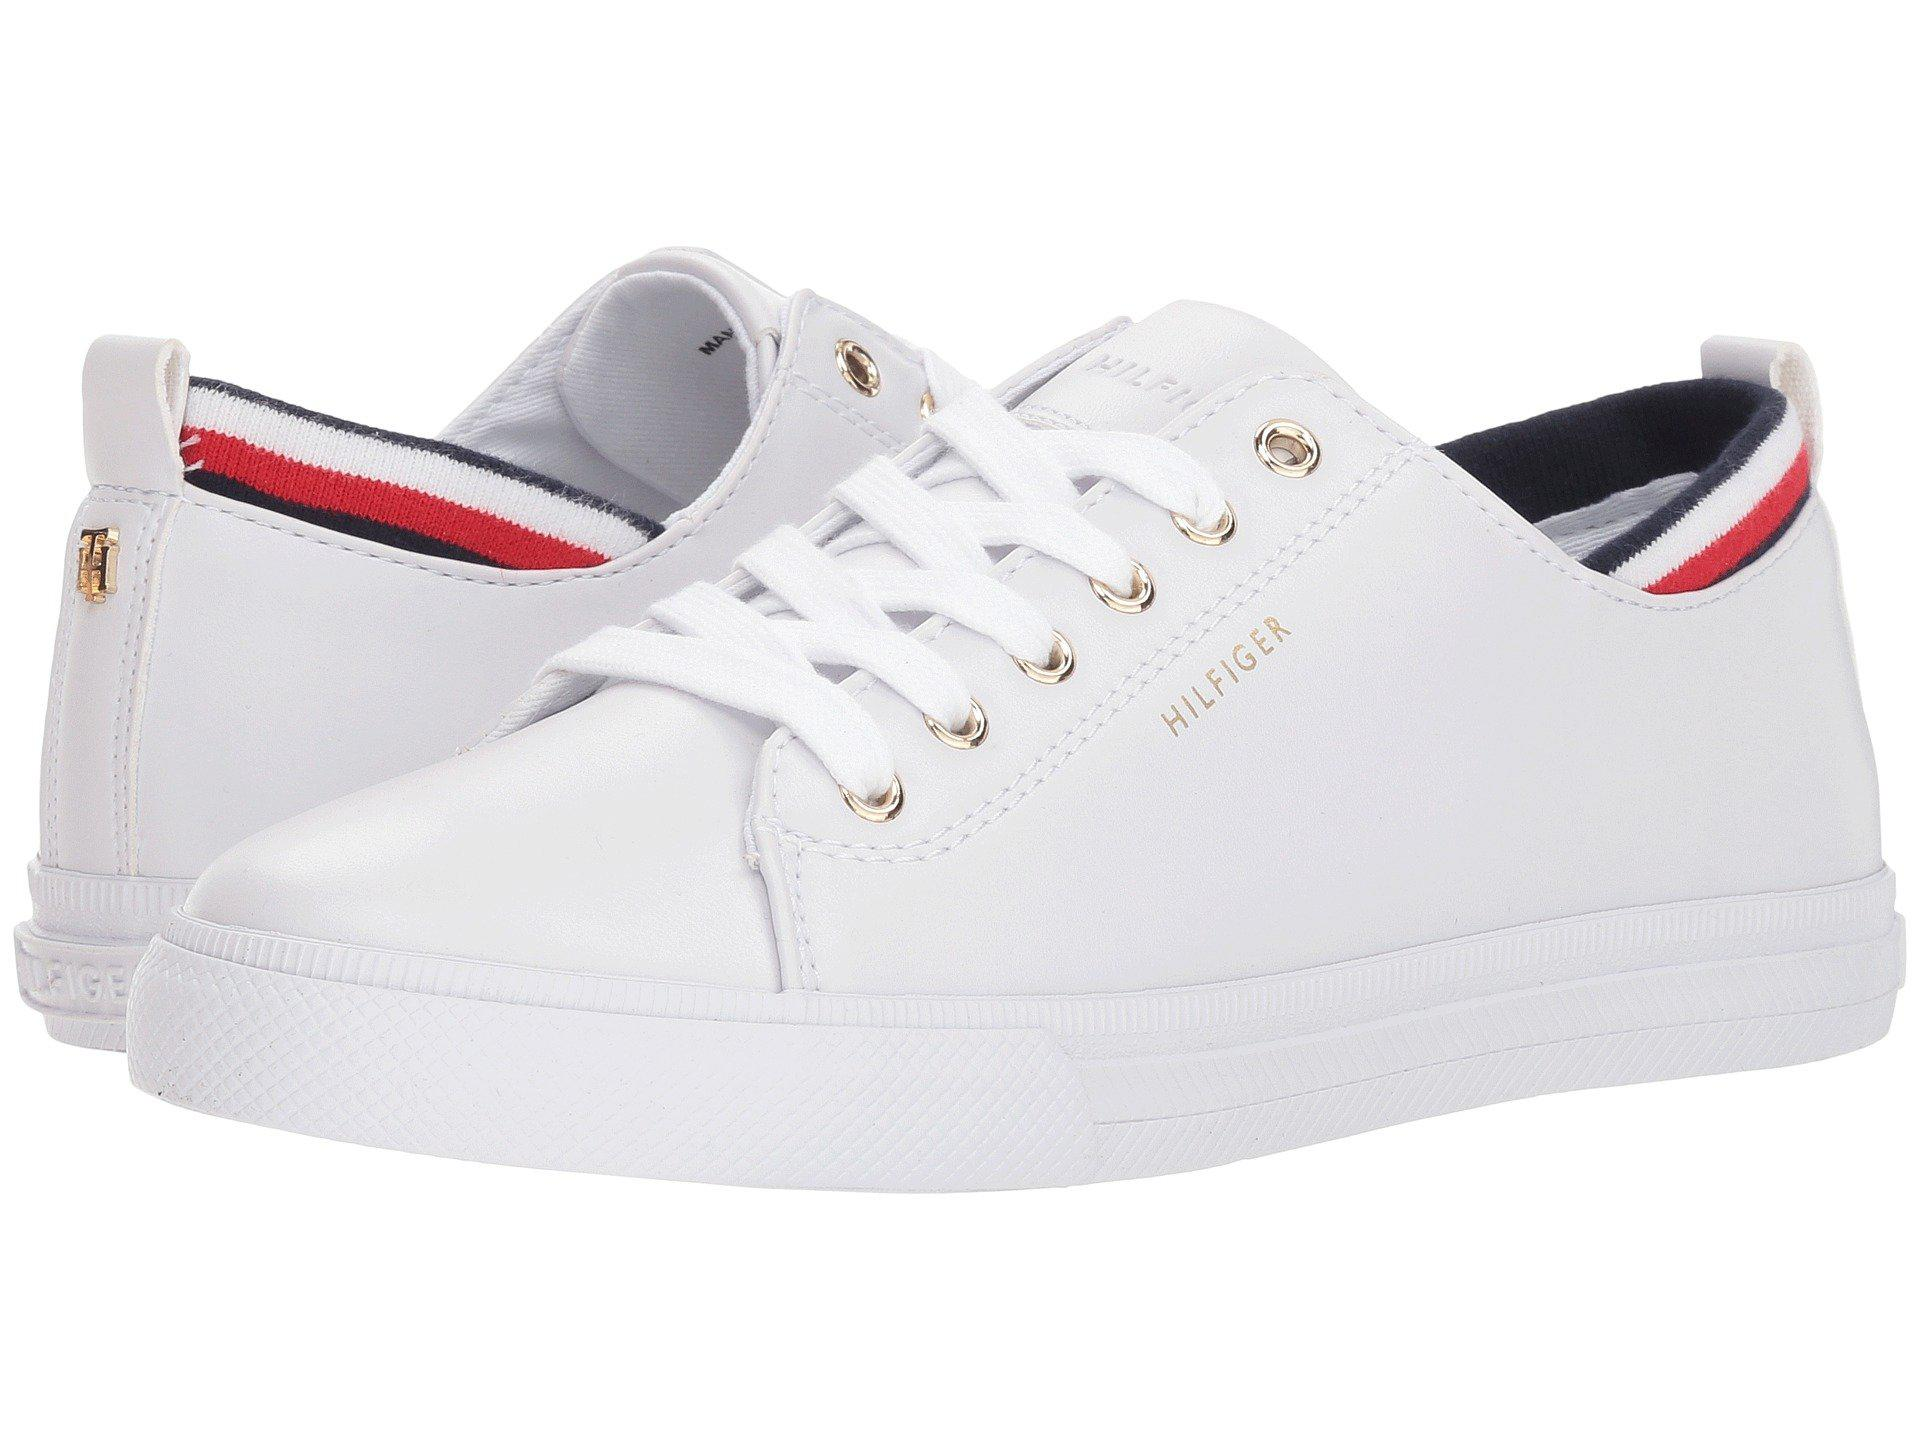 2cc04bfd2 Lyst - Tommy Hilfiger Lou in White